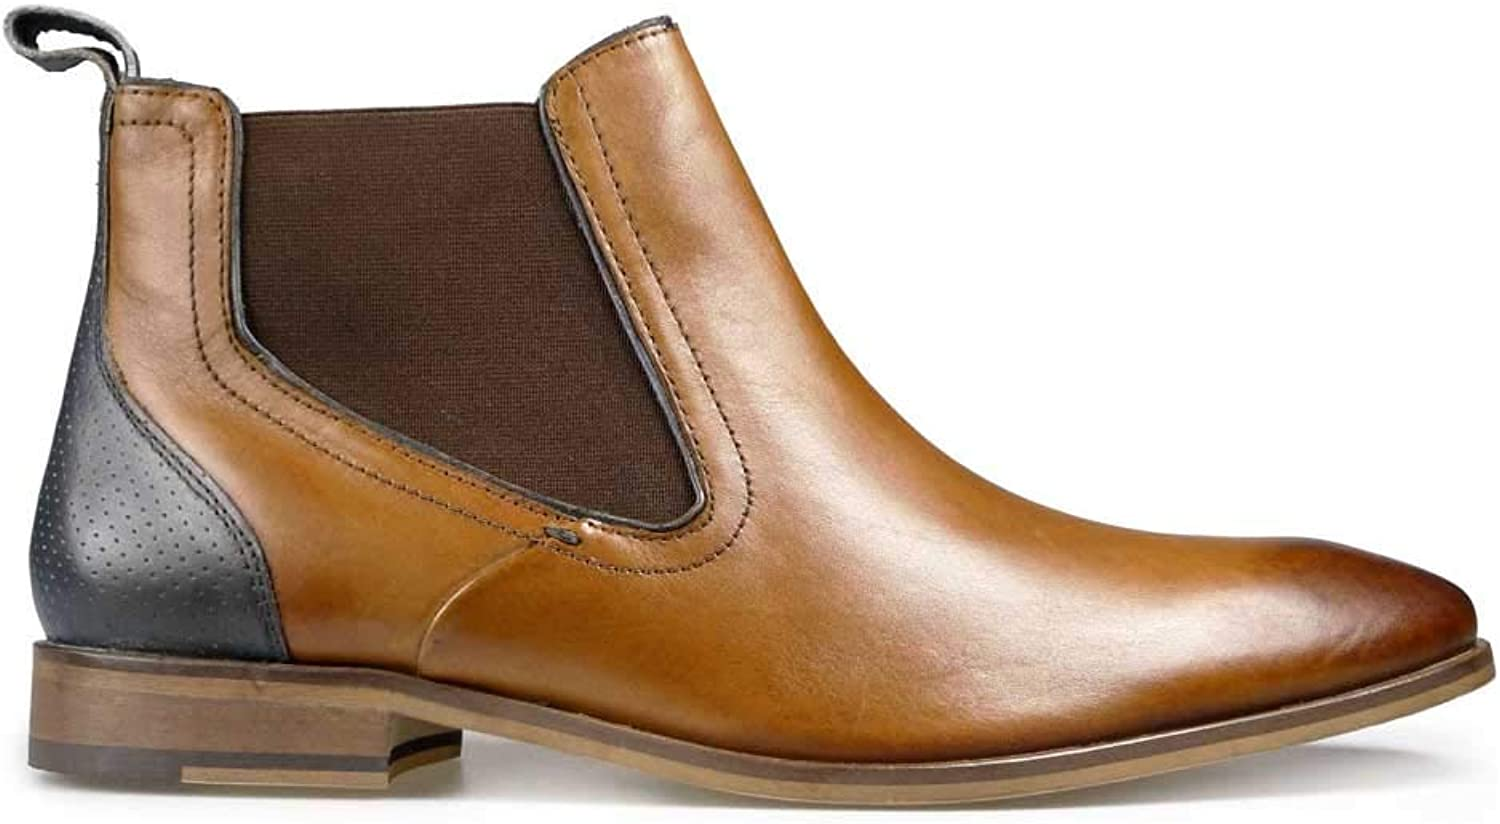 Pod Mens Chelsea Boot (Phoenix 2) in Cognac-Navy